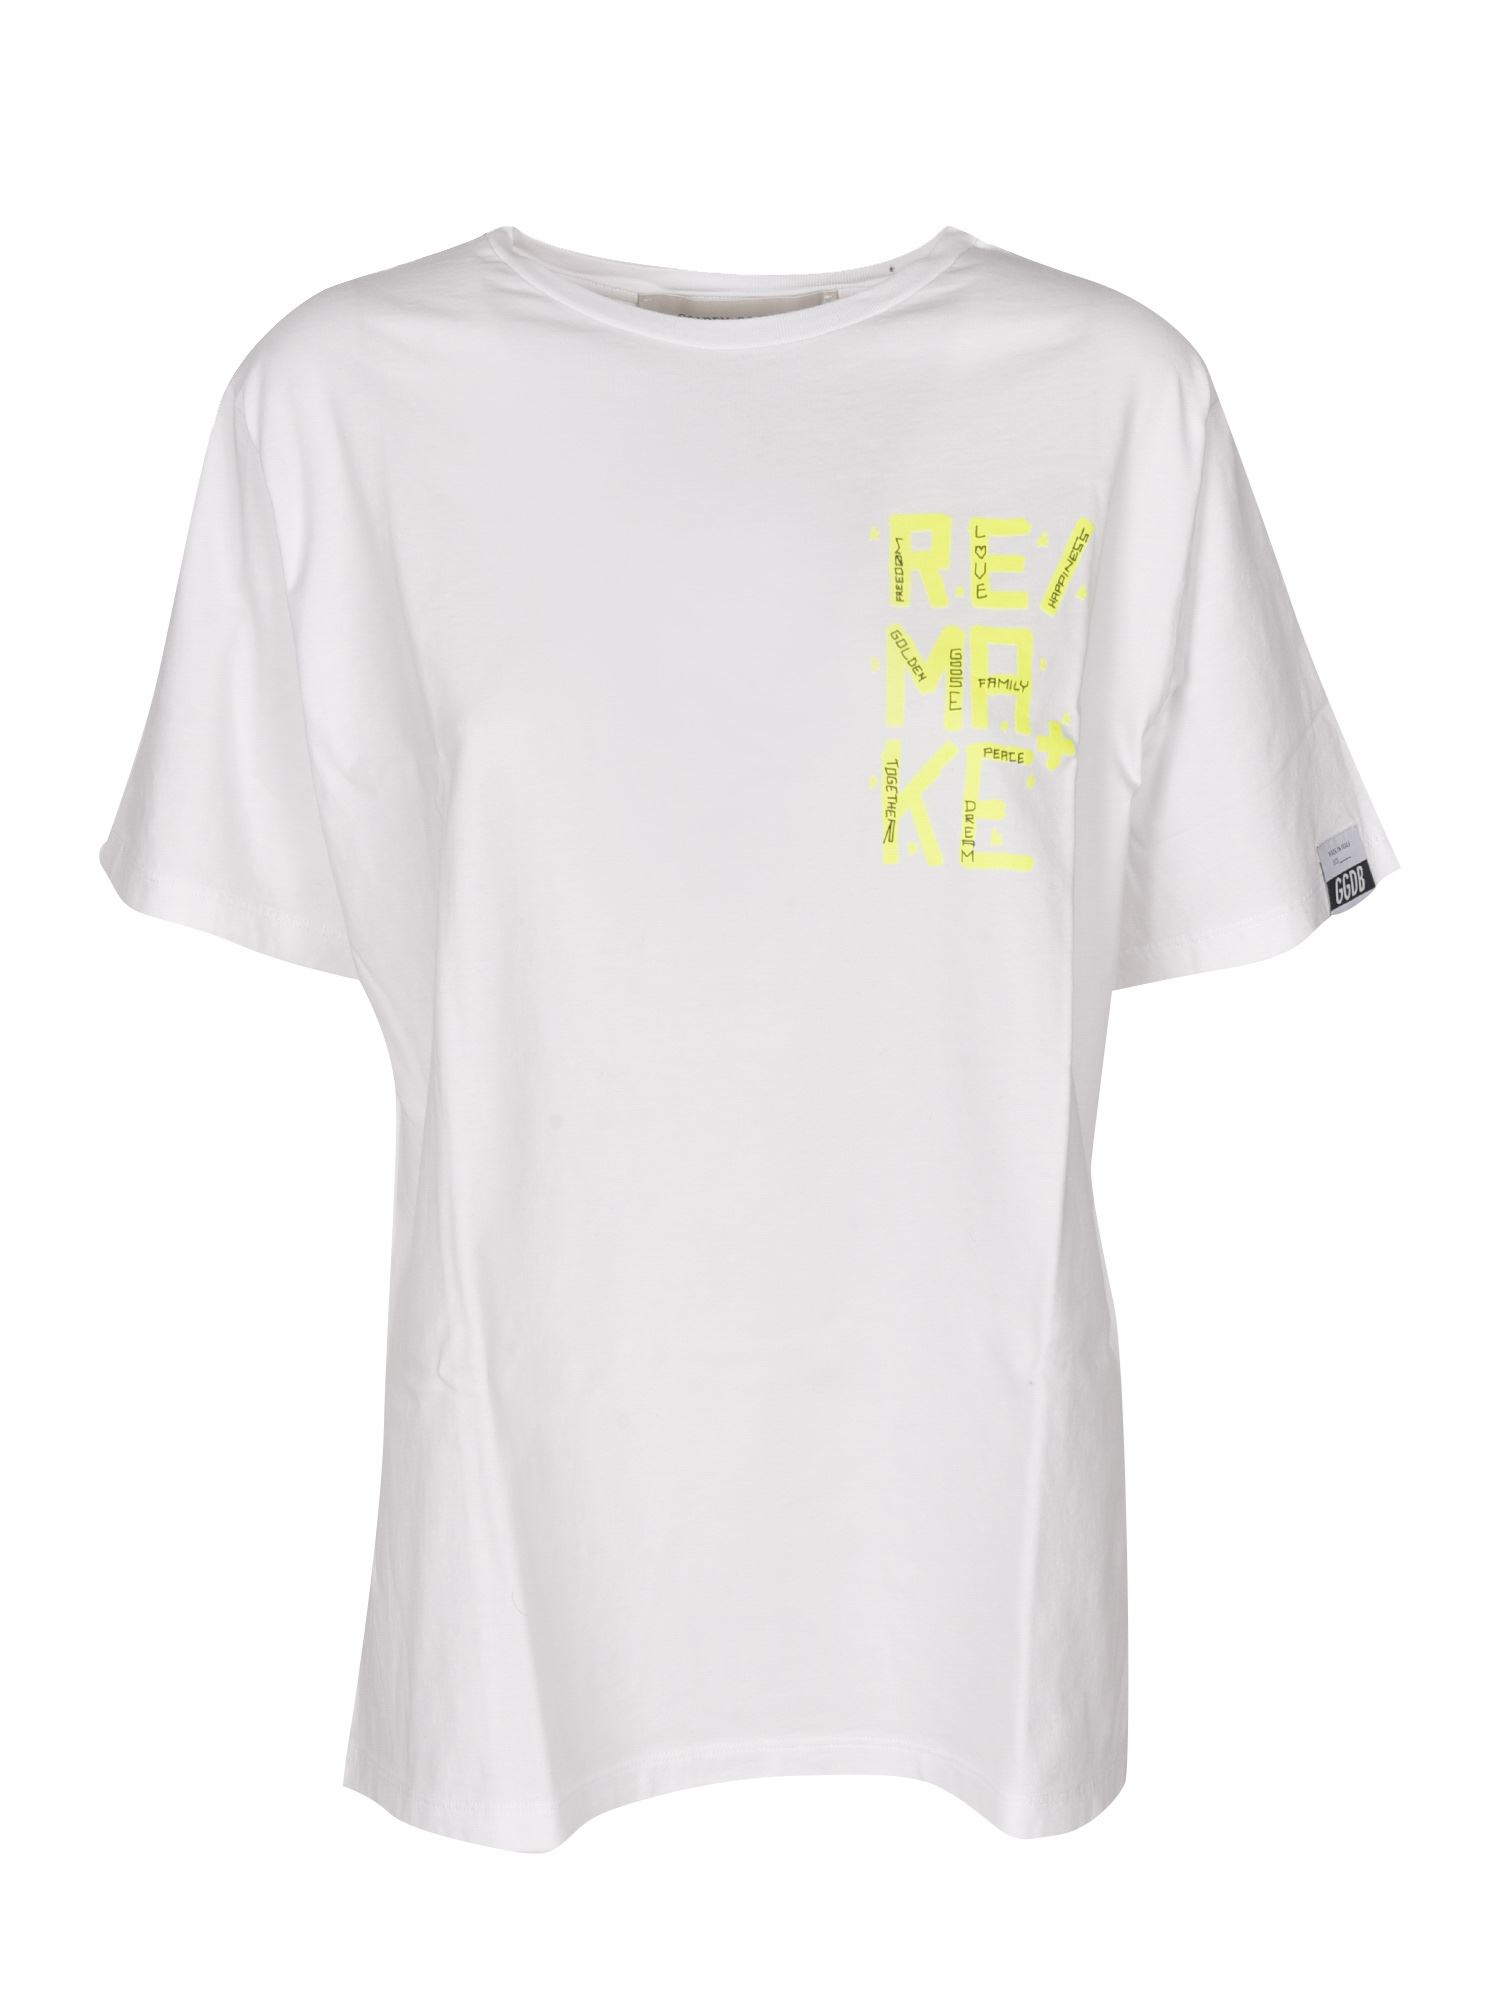 Golden Goose T-shirts AIRA T-SHIRT IN WHITE